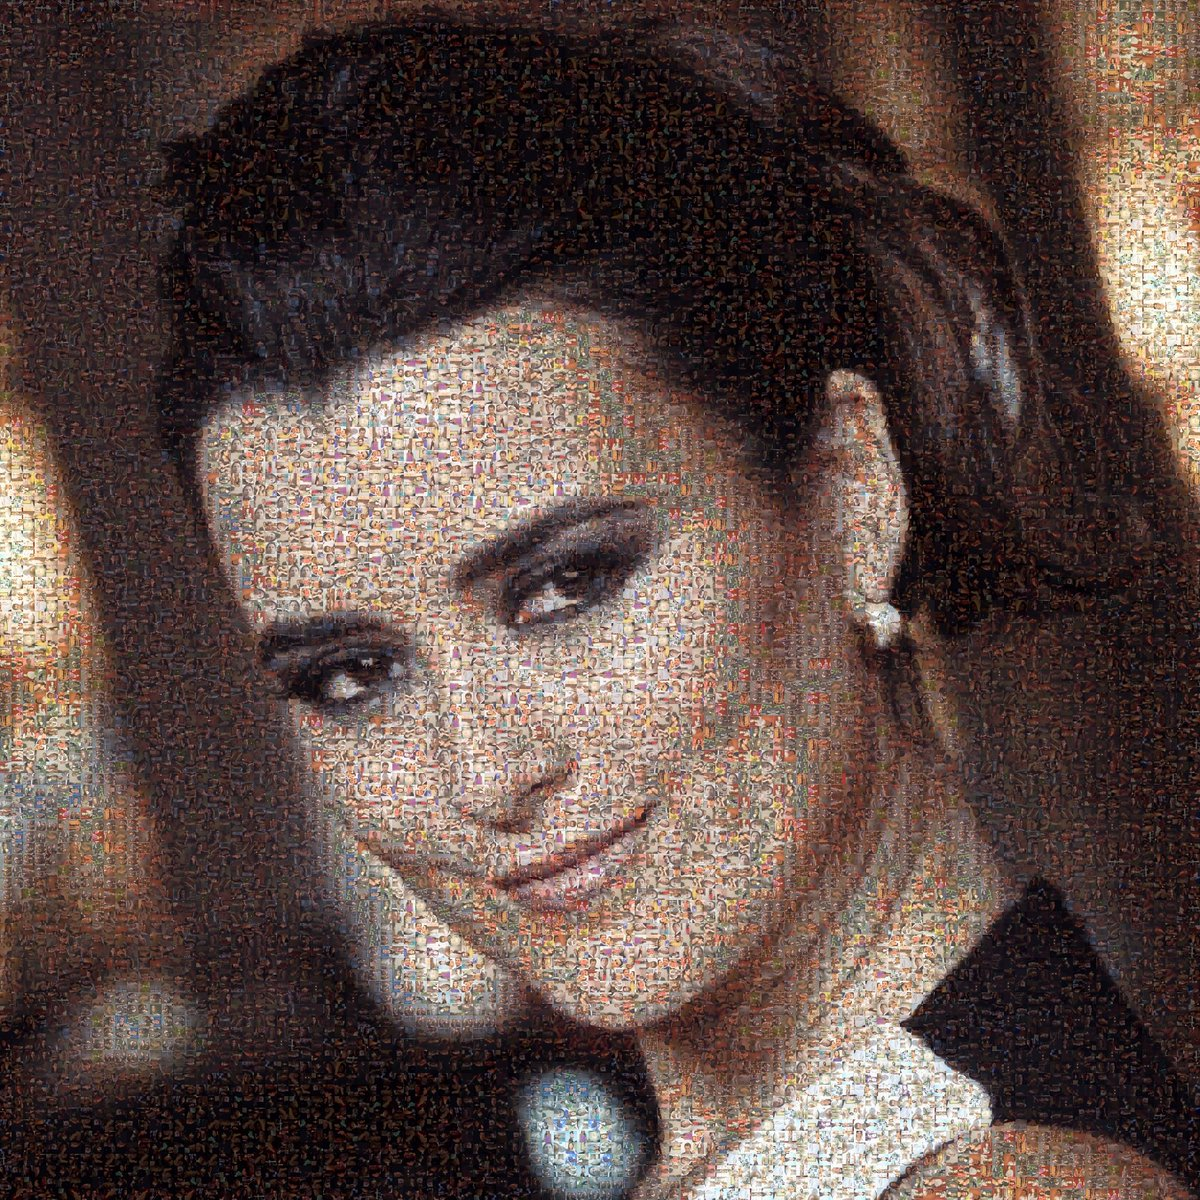 #CotedePablo #ZivaDavid #TeamCote #Beauty